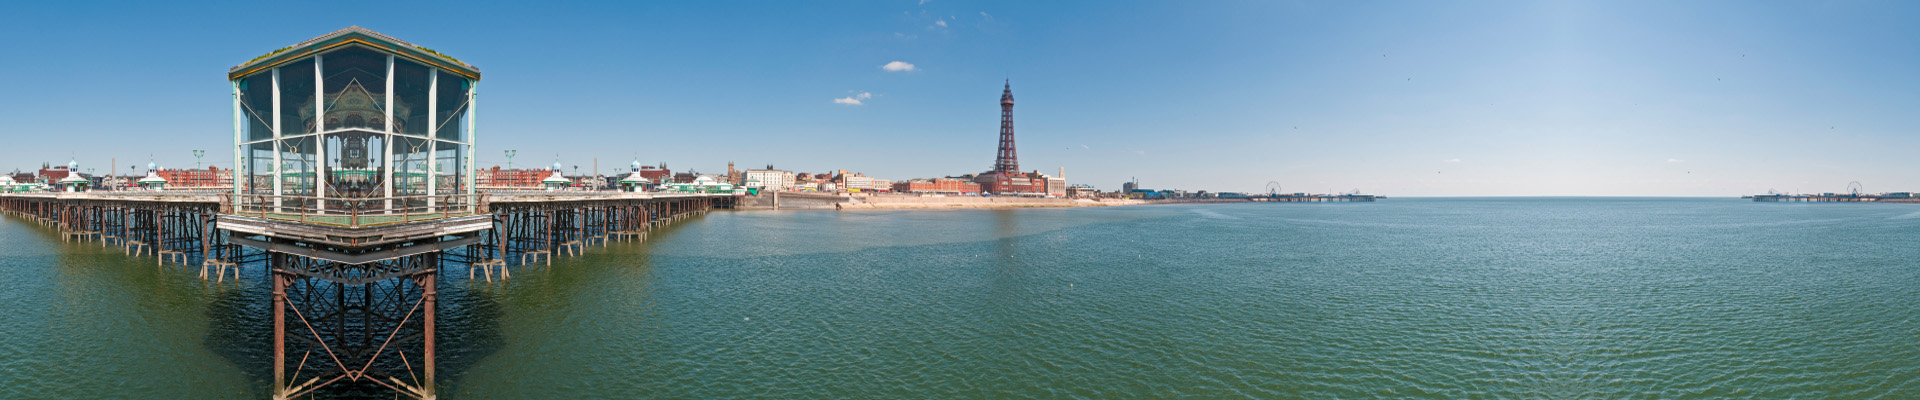 Hotels Near The Winter Gardens Blackpool Part - 45: Chaplins Hotel, Blackpool Tower Guest House, Central Bu0026b, Albert Road